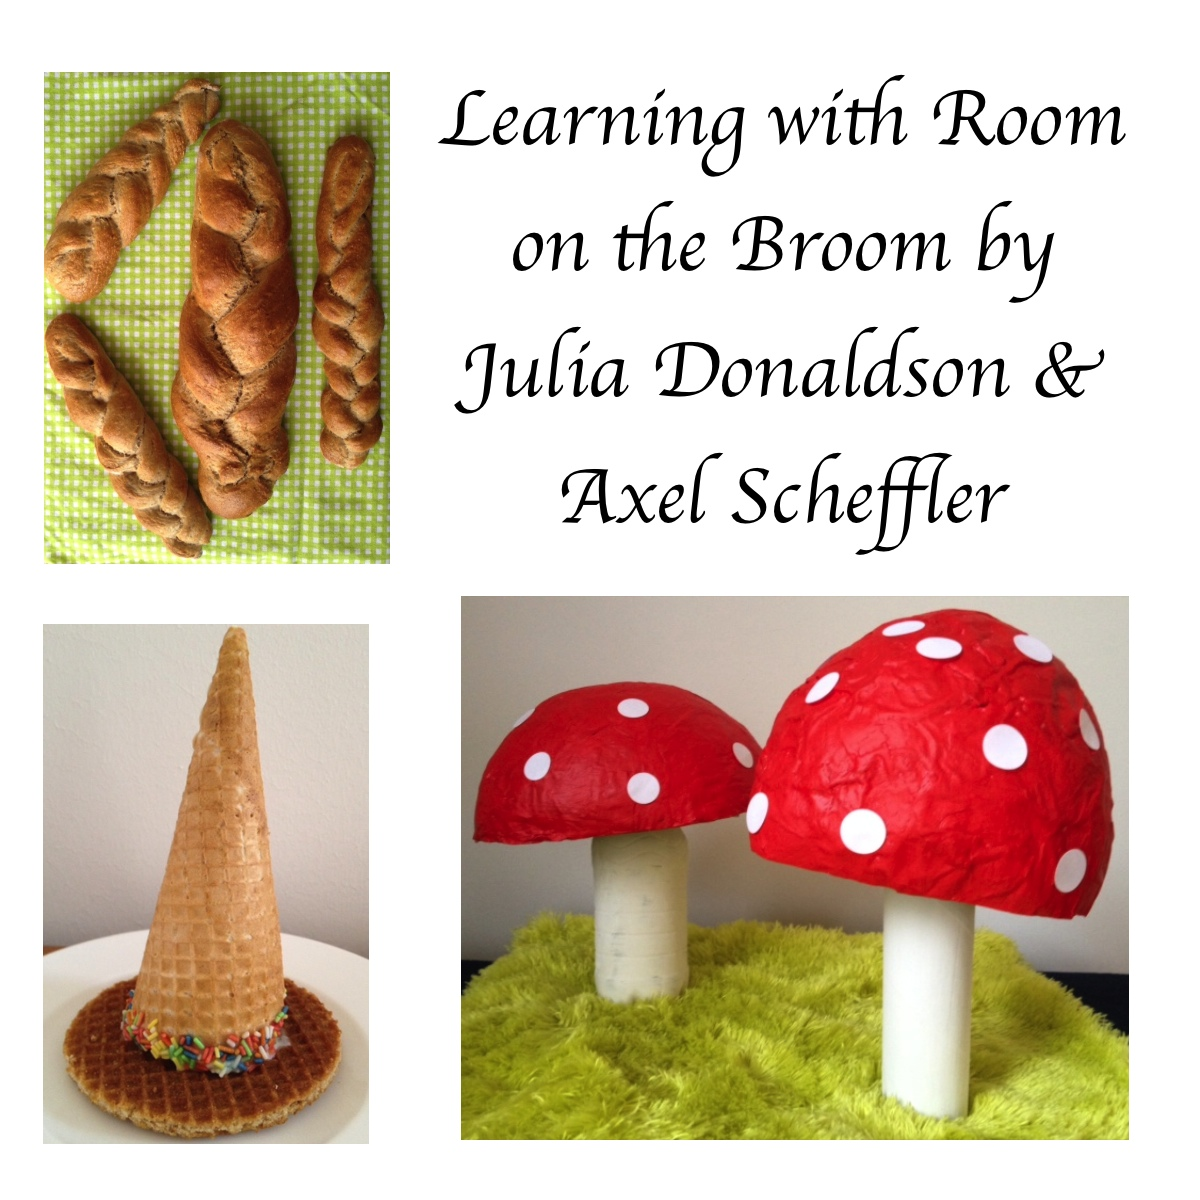 Learning with Room on the Broom by Julia Donaldson & Axel Scheffler